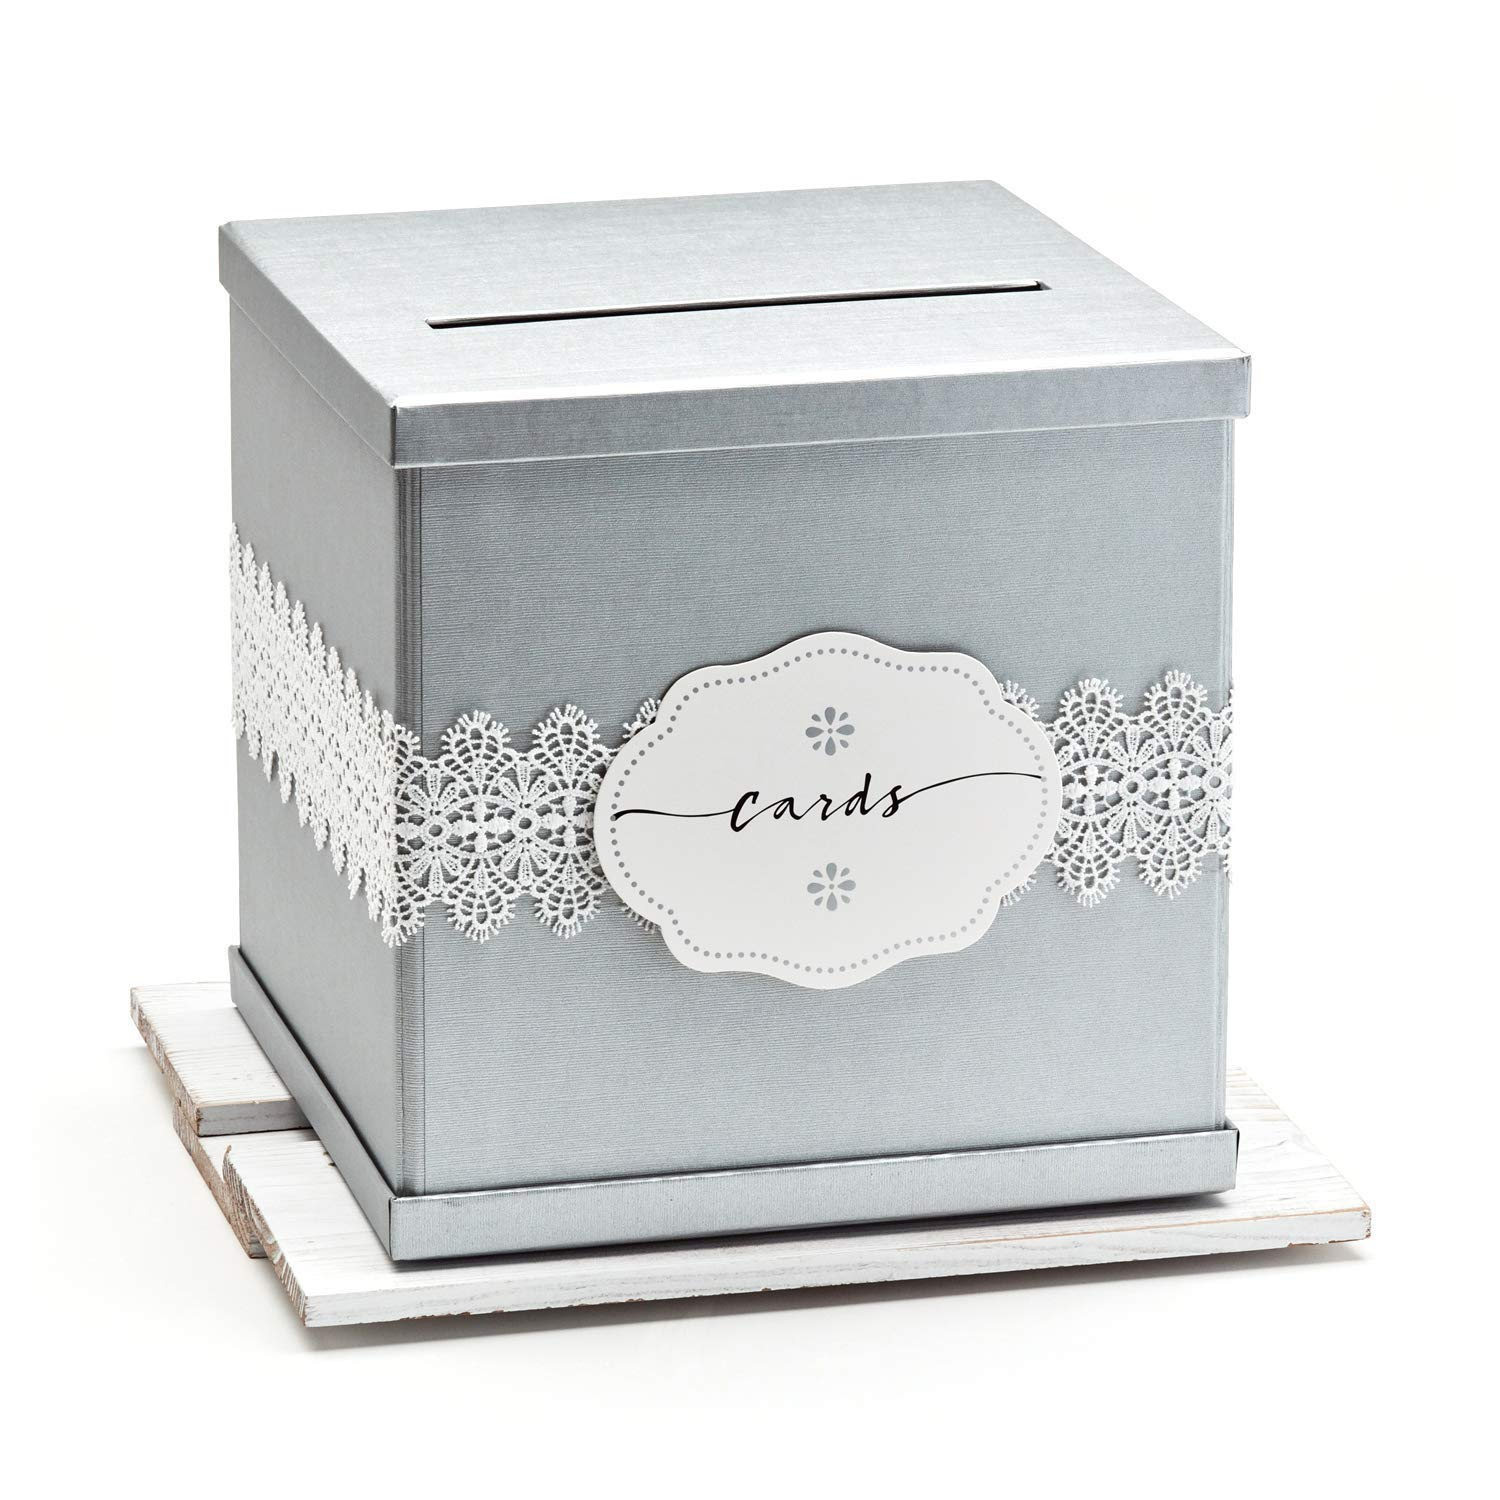 Hayley Cherie - Silver Gift Card Box with White Lace and Cards Label - Ivory Textured Finish - Large Size 10'' x 10'' - Perfect for Weddings, Baby Showers, Birthdays, Graduation